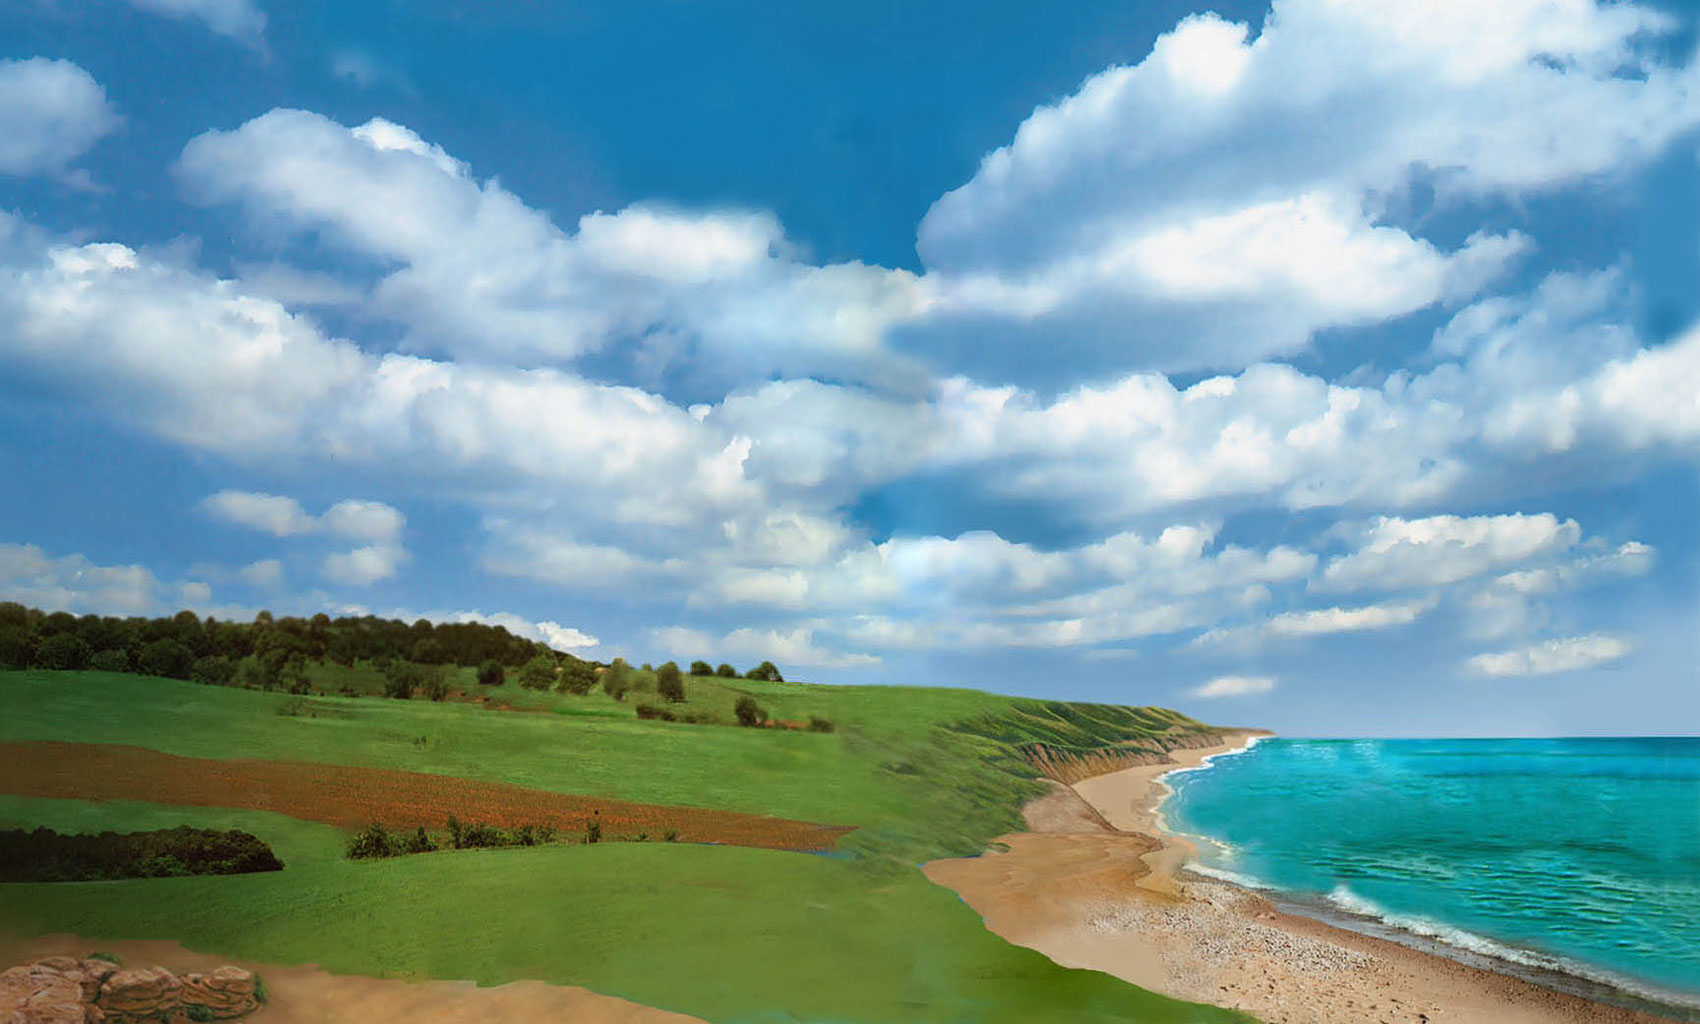 illustration-Landscapes_Coastline clouds-Impressa